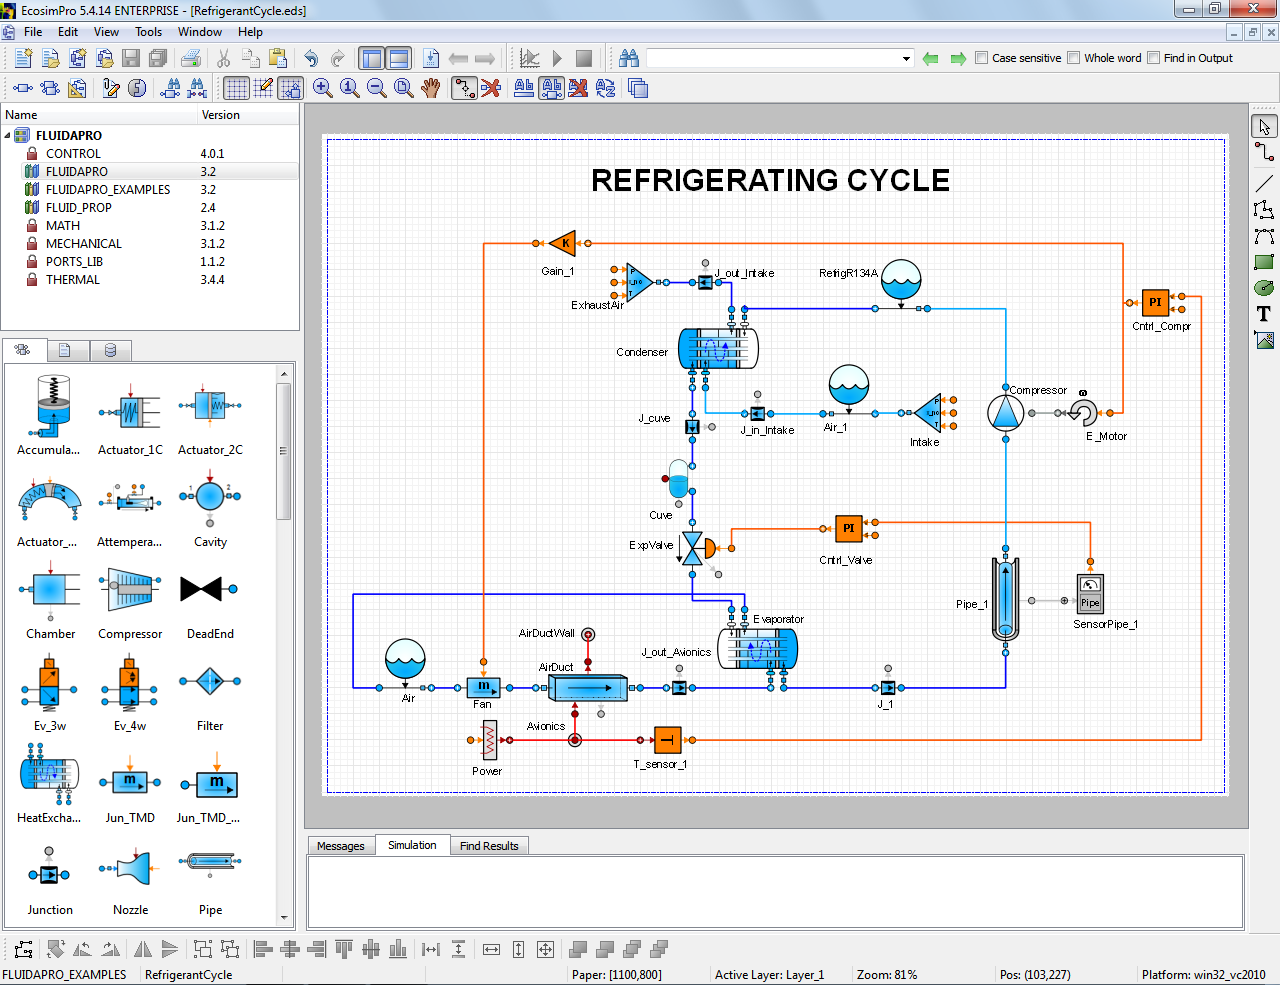 Ecosimpro Modelling And Simulation Software